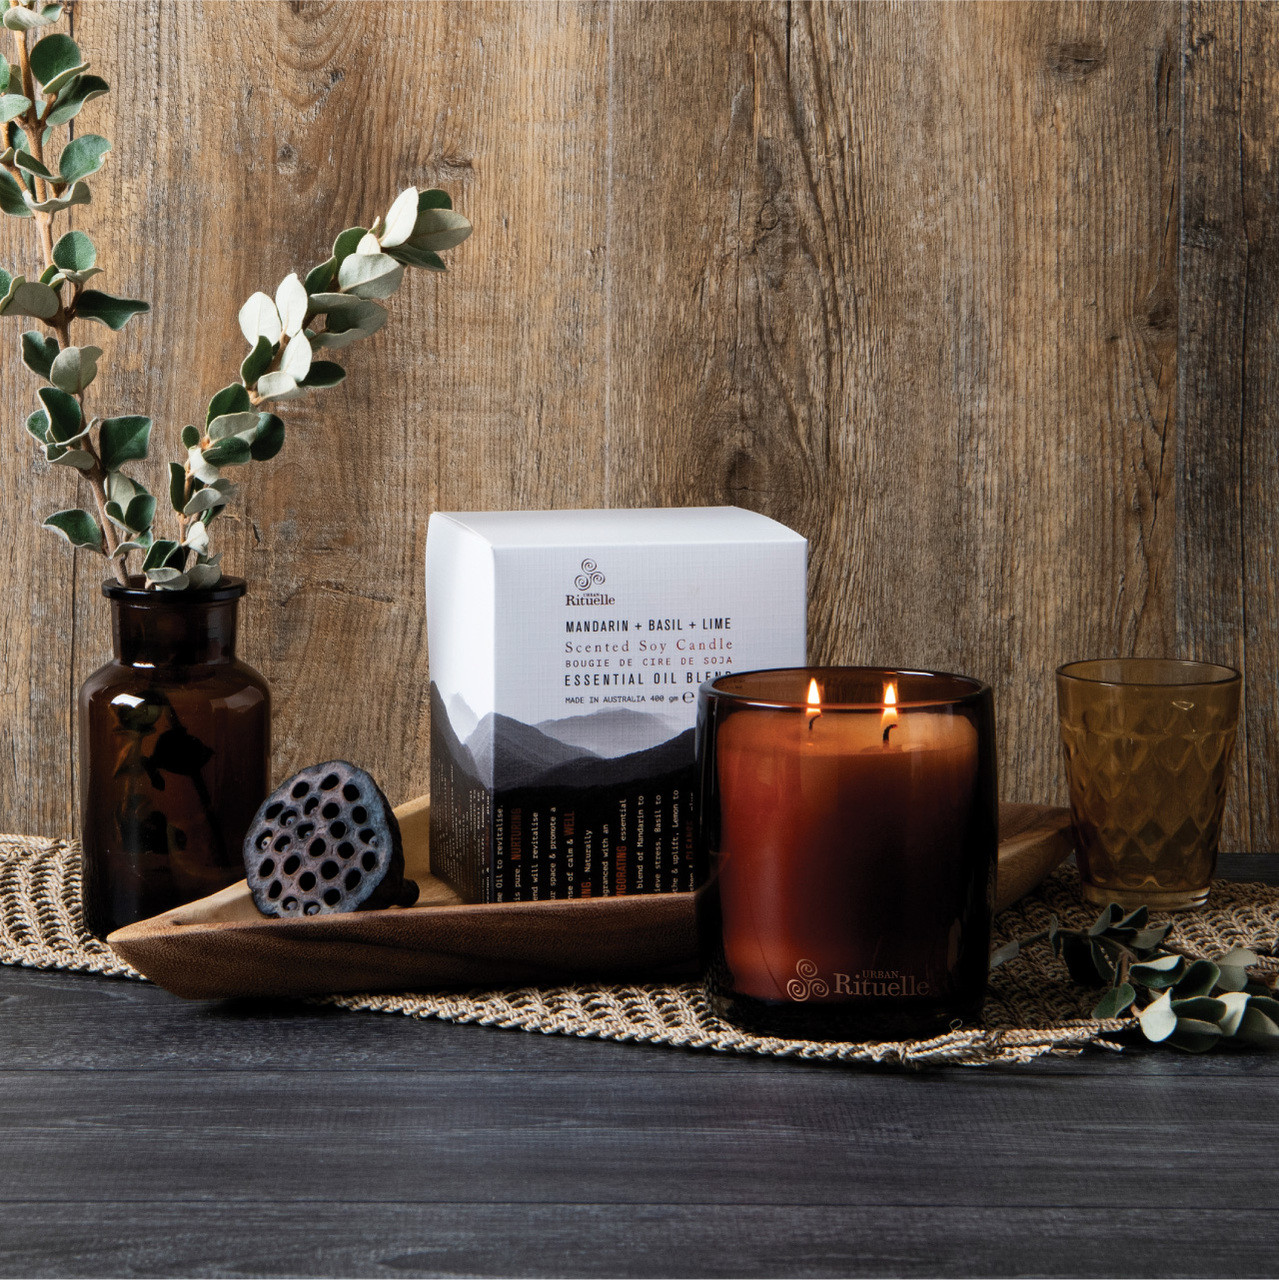 Equilibrium - Scented Soy Candle - Mandarin, Basil & Lime - Urban Rituelle